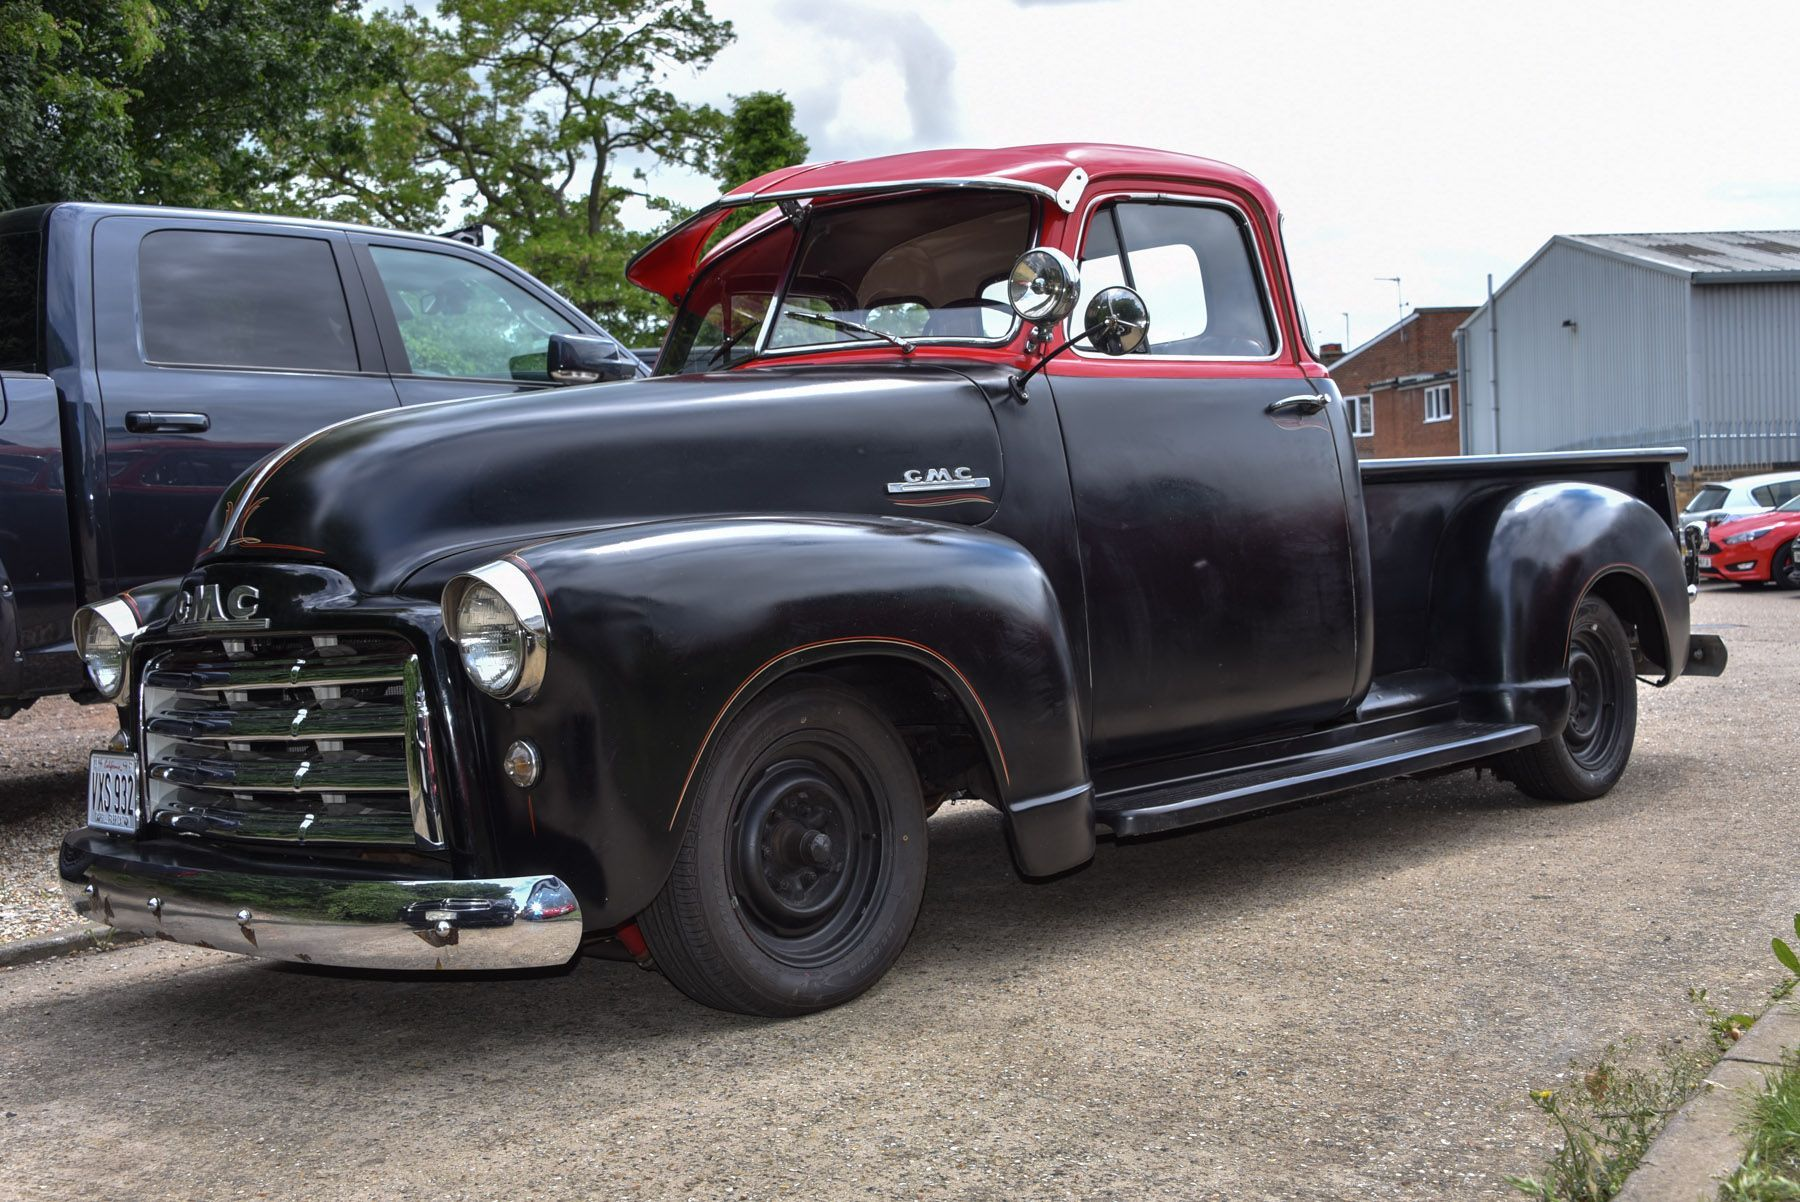 1951 Classic Americana Gmc Pickup With New Chevrolet 350 V8 Auto